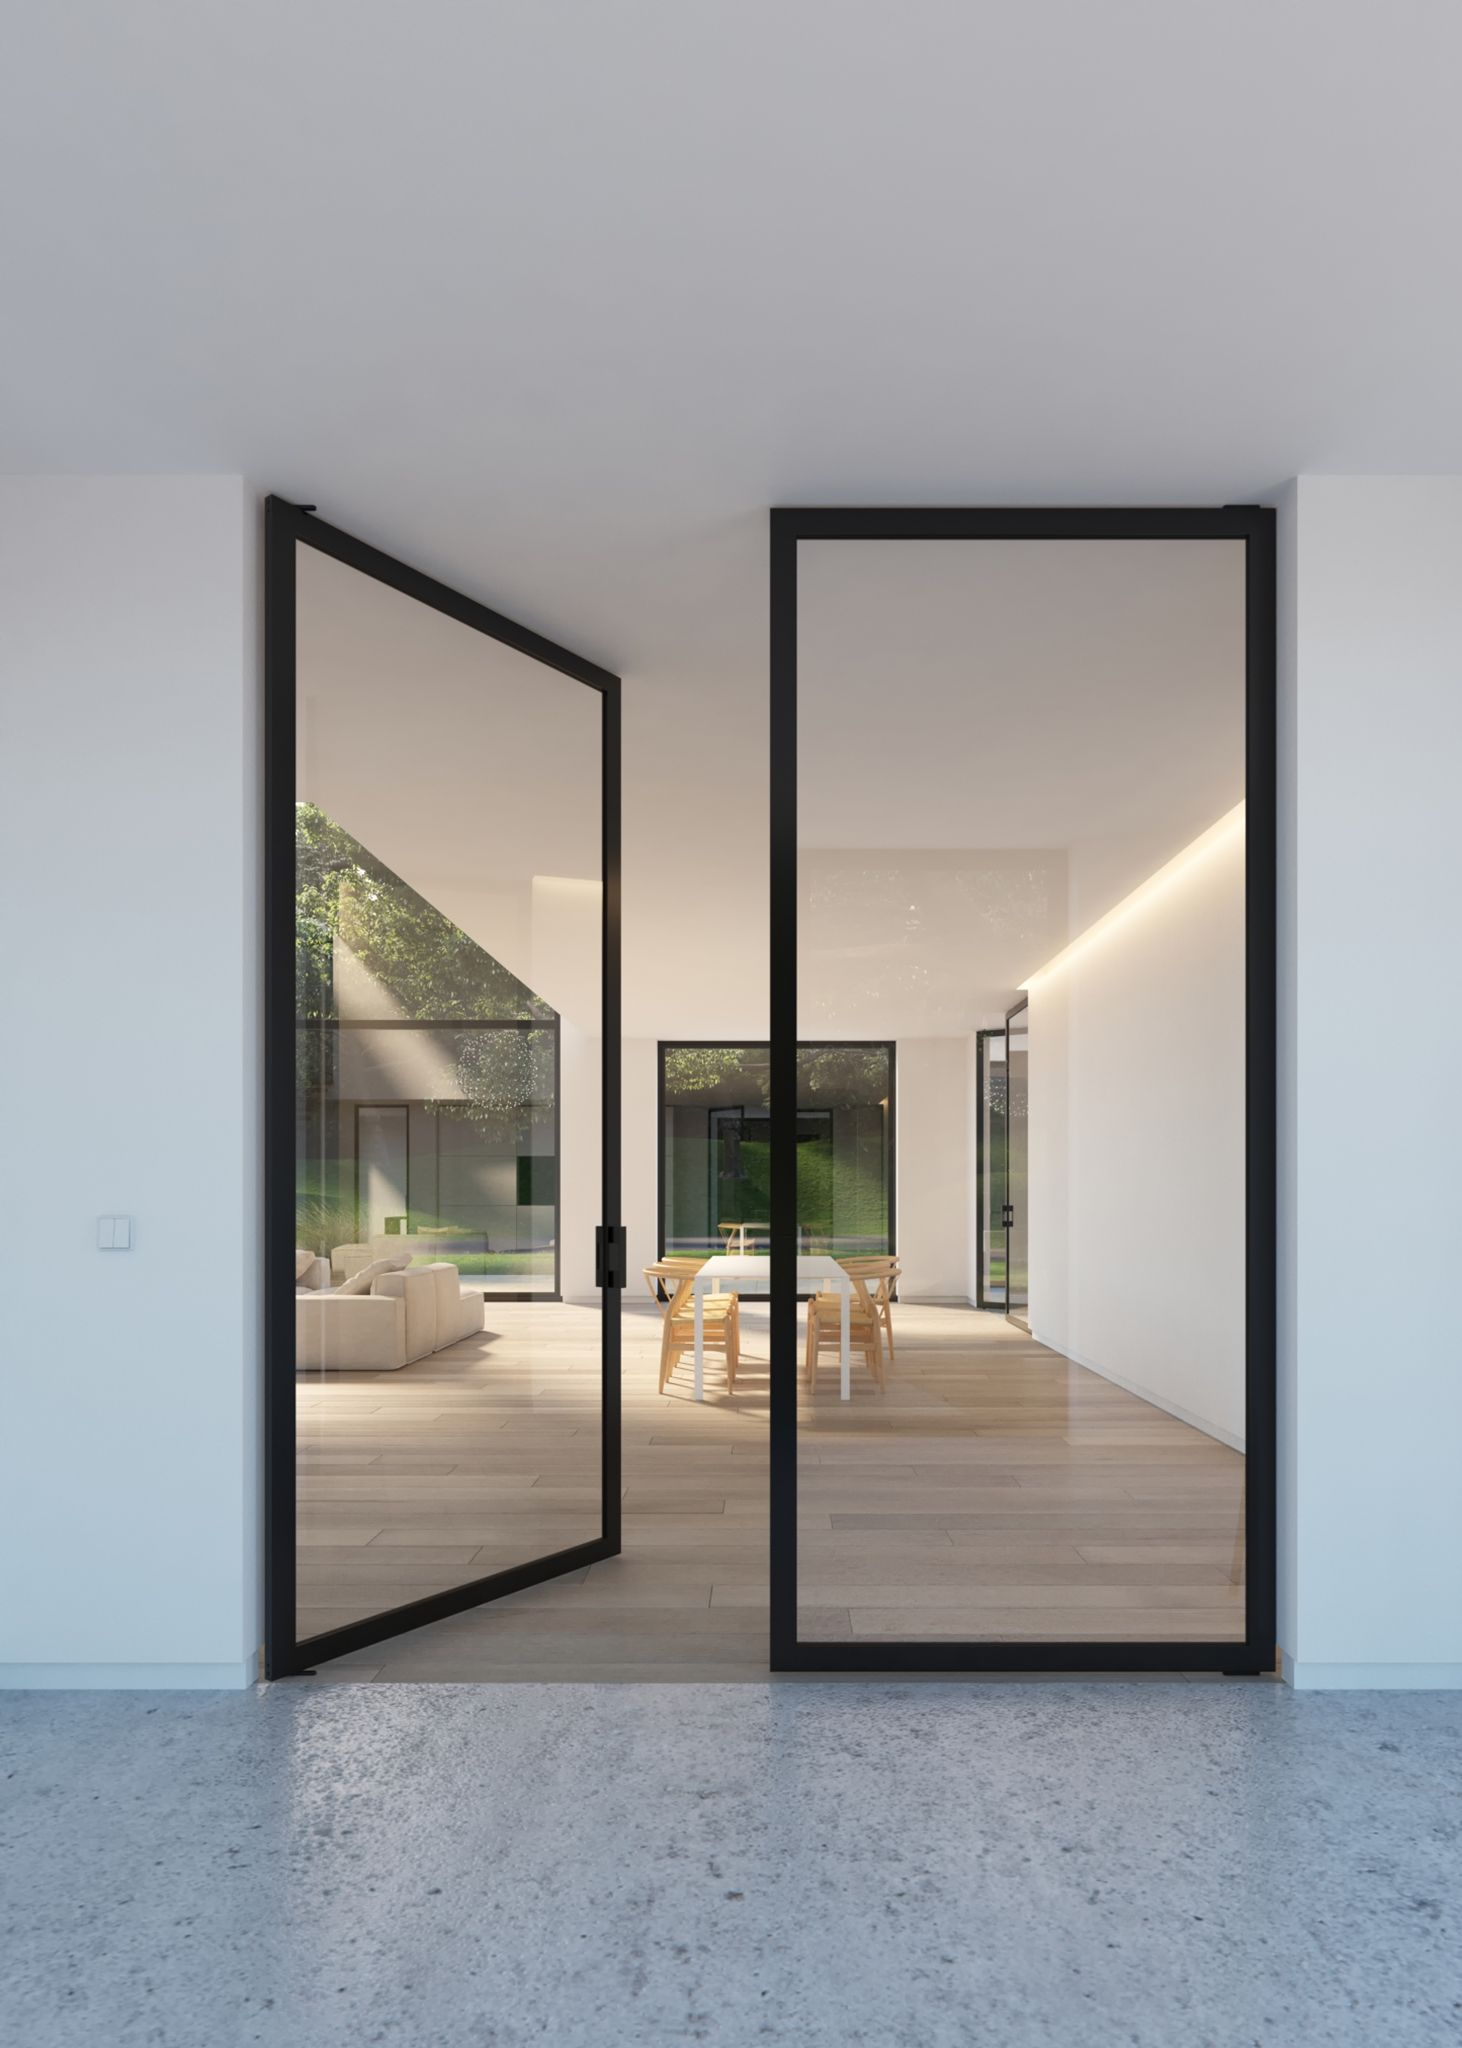 Le Meilleur Double Glass Door With Steel Look Frames Portapivot Ce Mois Ci